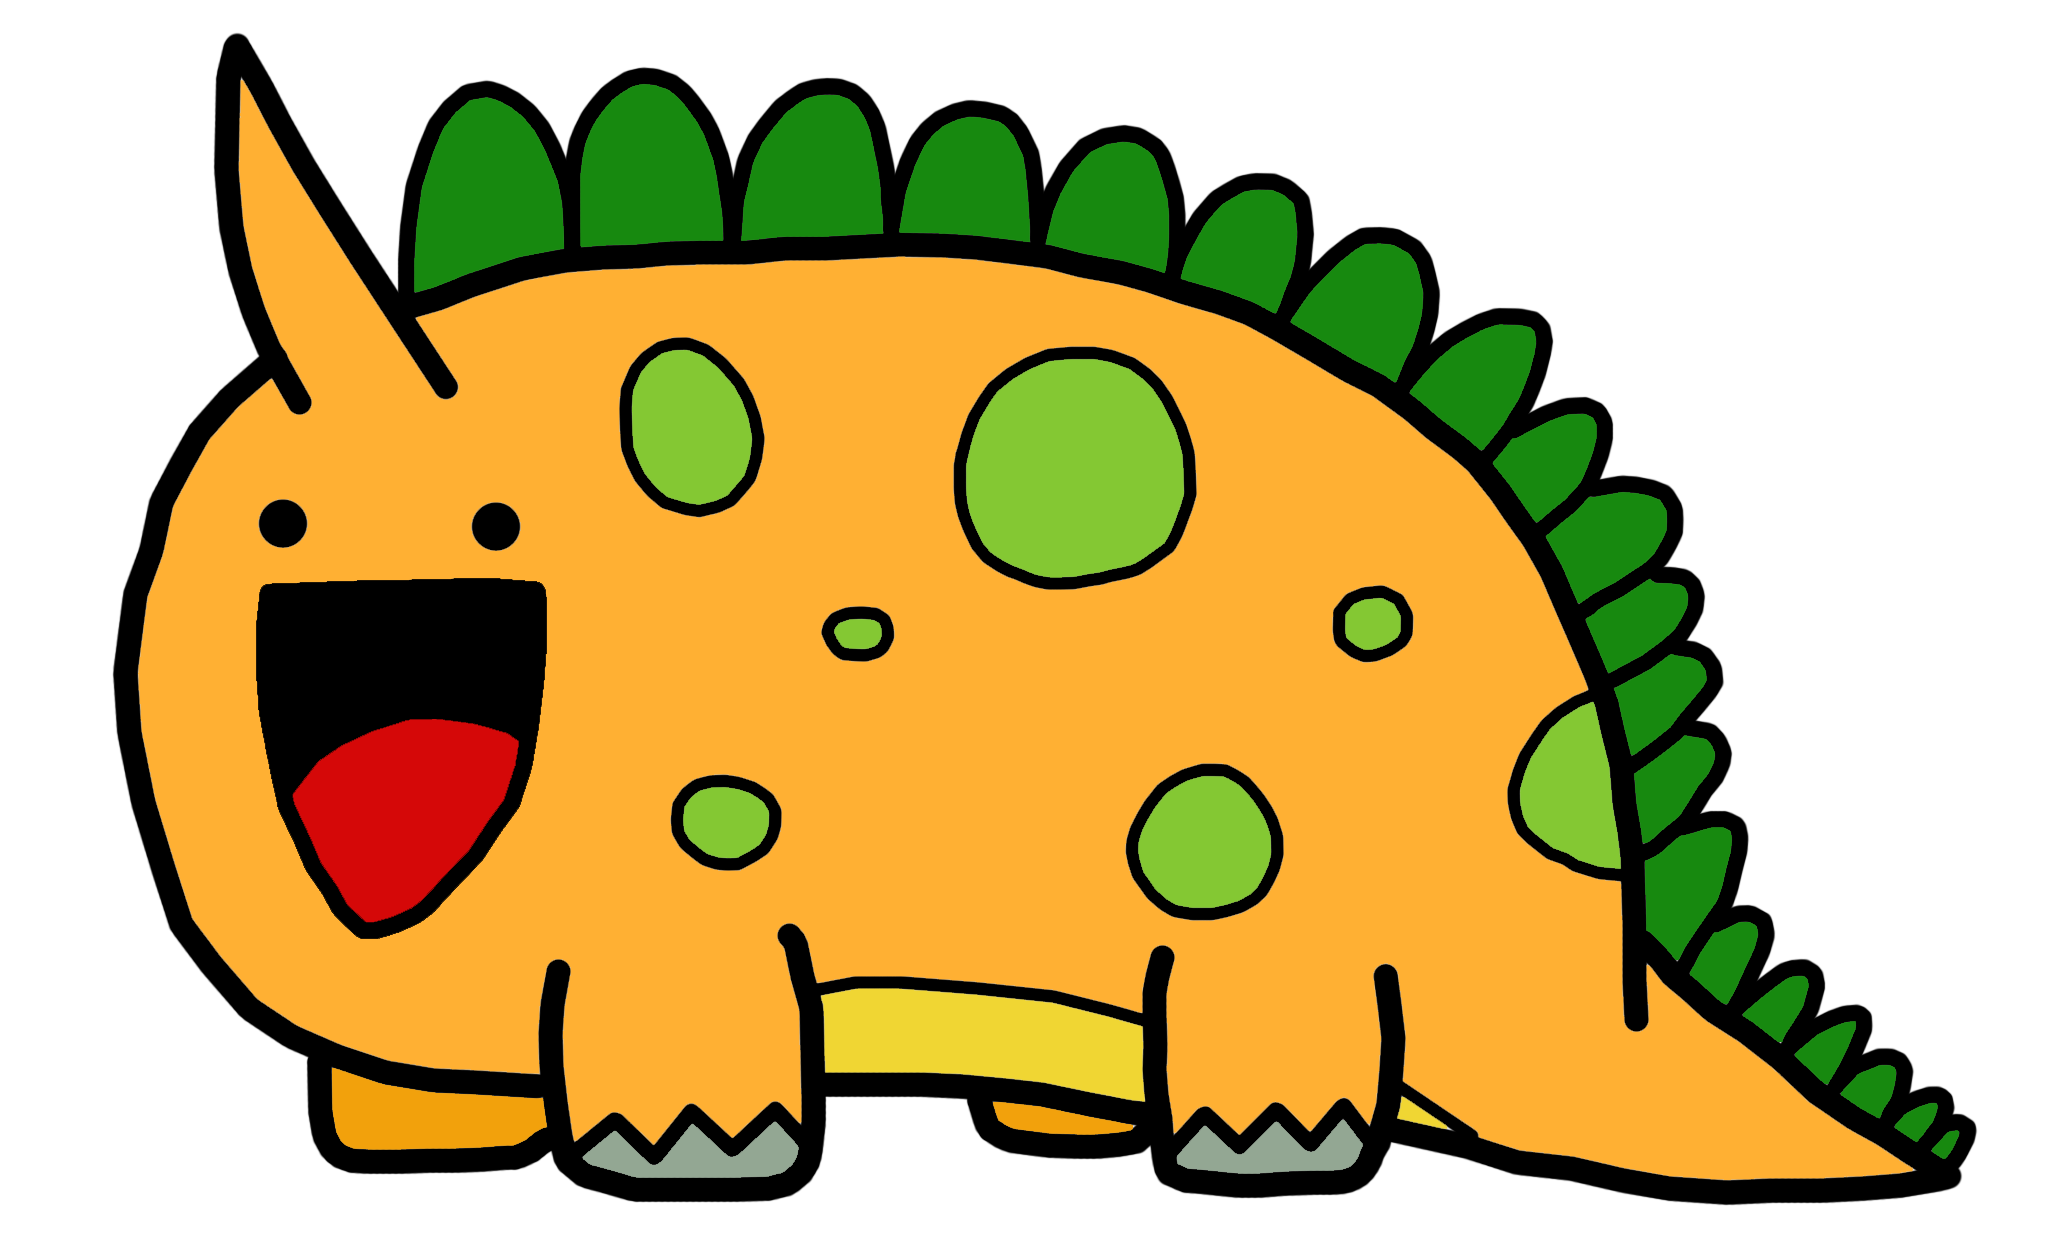 Cute dinosaur png. Dinosaurs animated by easterbonnie